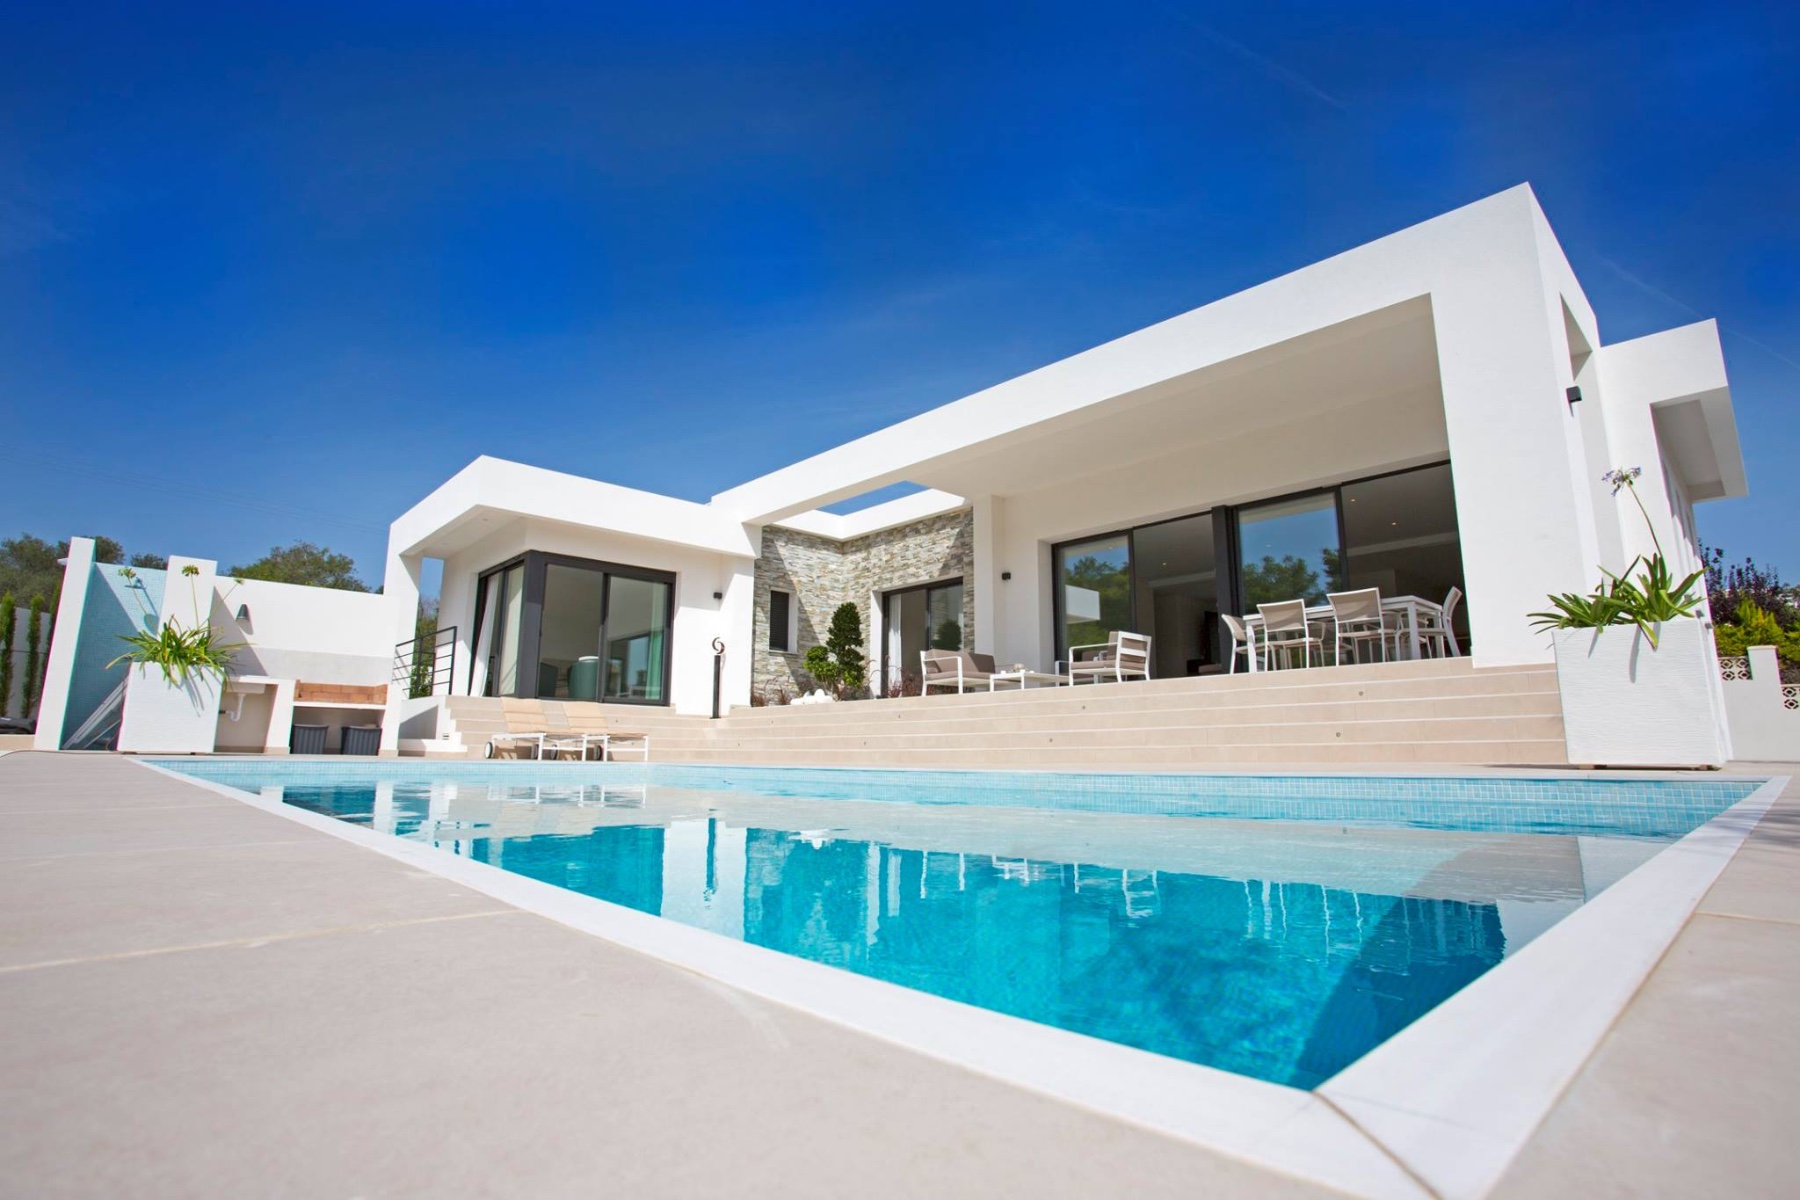 The villa of 197 m2 will be all on one level on an 814 m2 plot and will comprise a spacious living,Spain